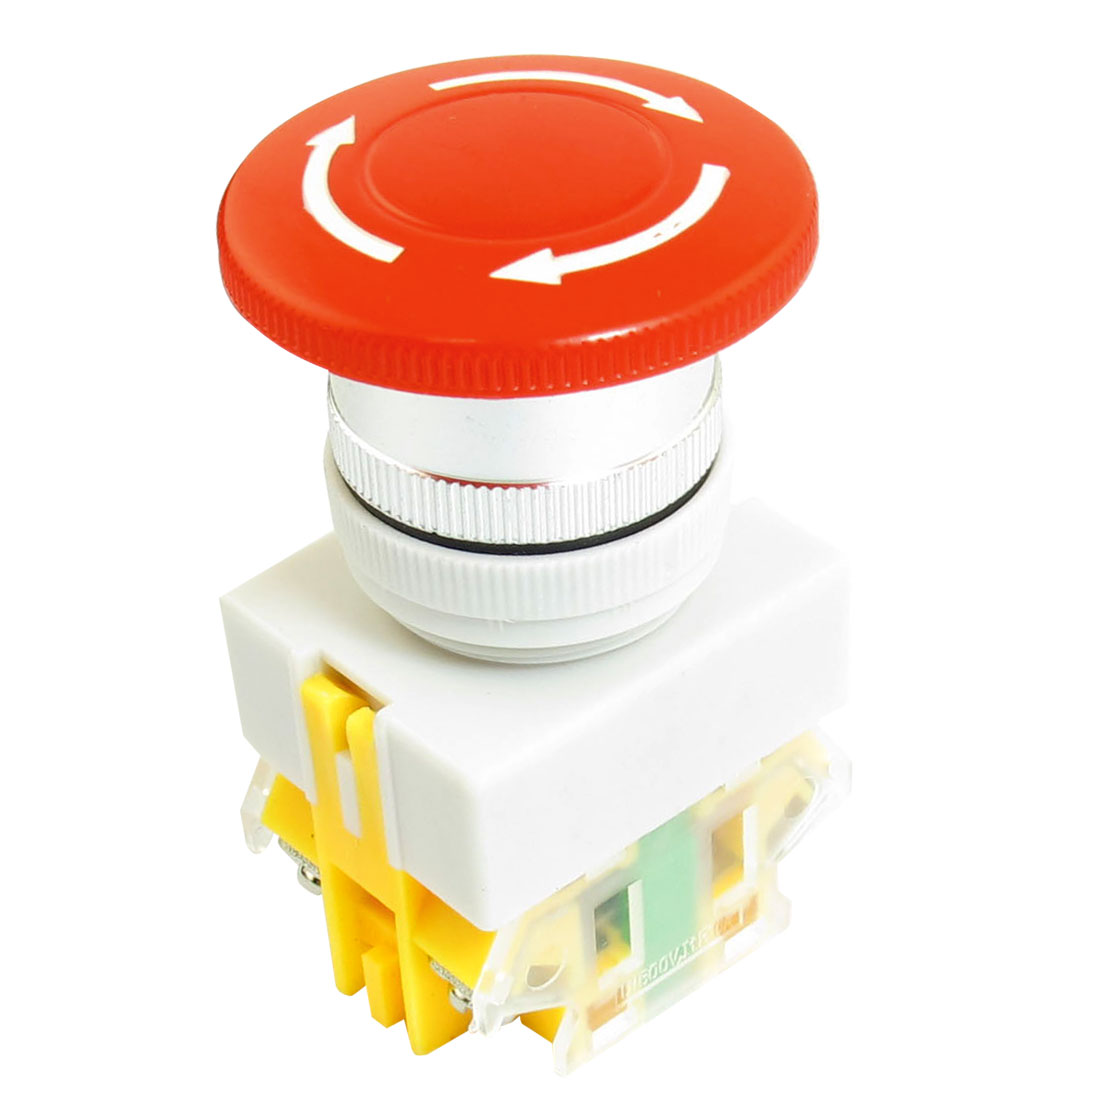 10A 600V DPST 1NO 1NC Style 4 Screw Terminals Latching Red Mushroom Head Push Button Press Emergency Stop Switch